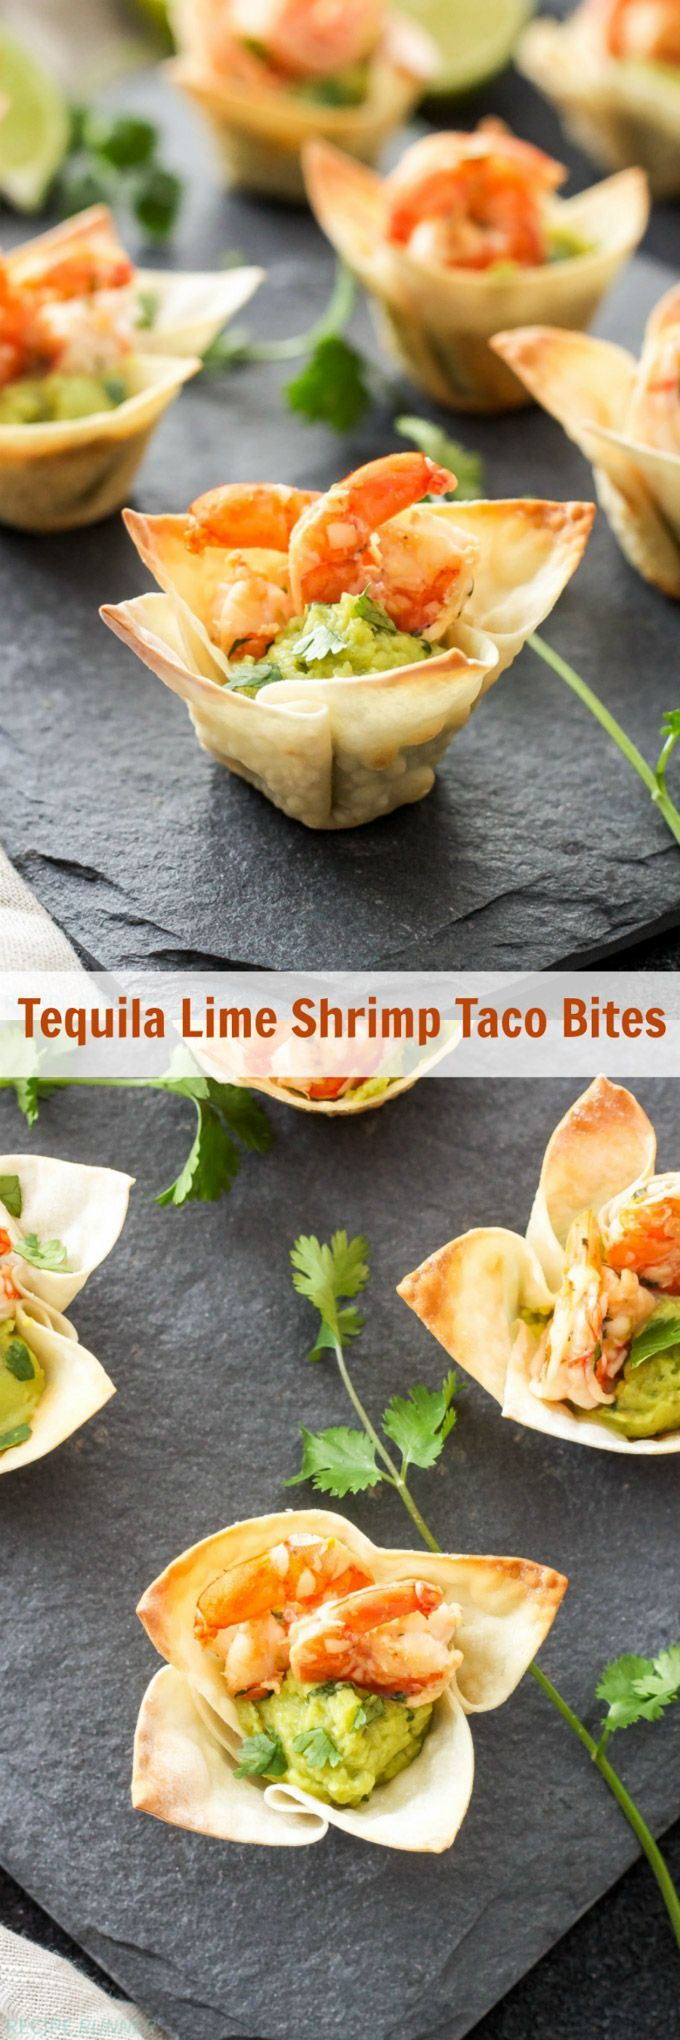 Tequila Lime Shrimp Taco Bites | Mini wonton cups filled with guacamole and topped with shrimp are the perfect, easy to make two-bite appetizer!